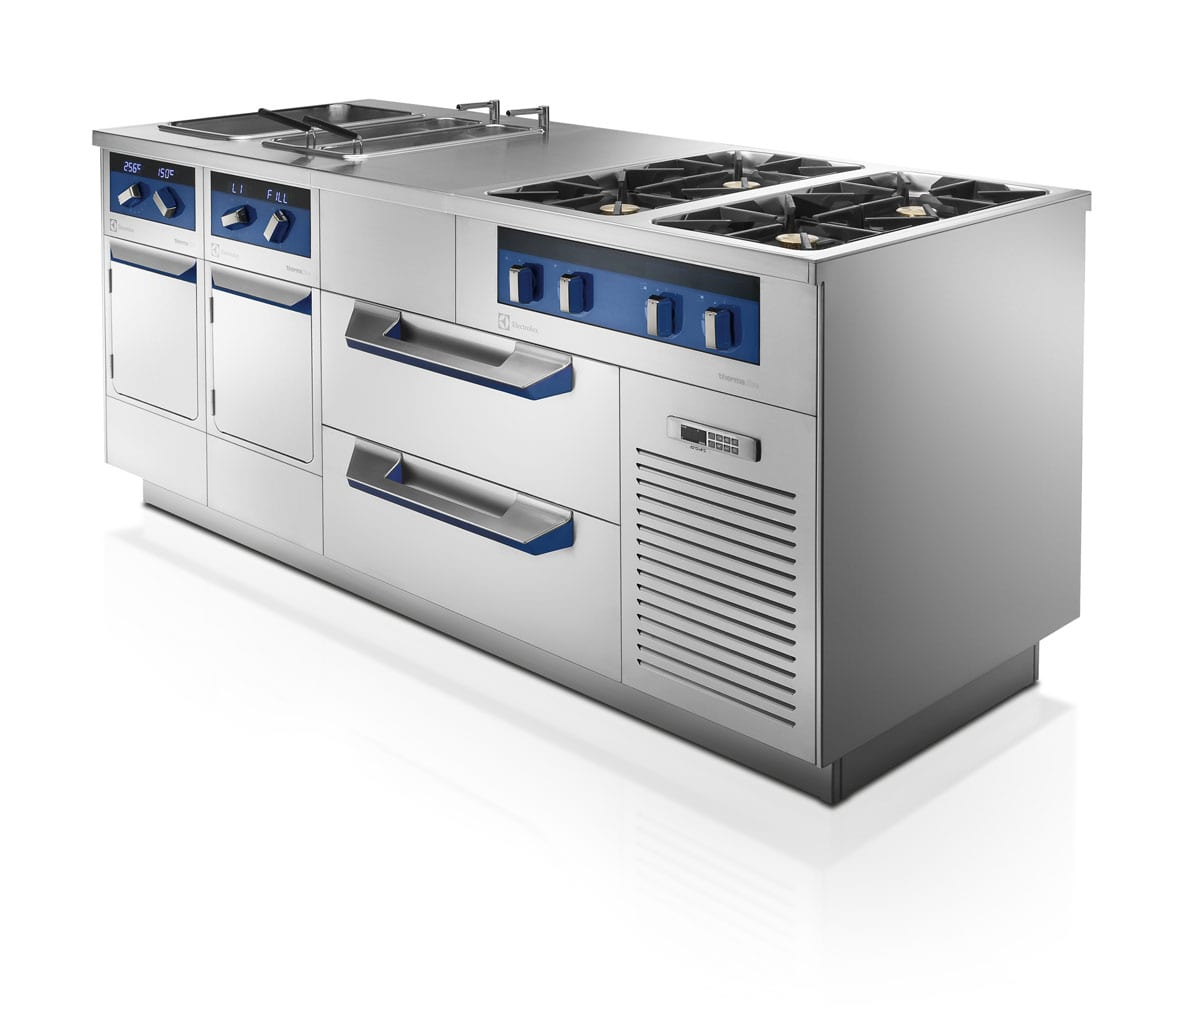 thermaline cooking ranges - Electrolux Professional Middle East